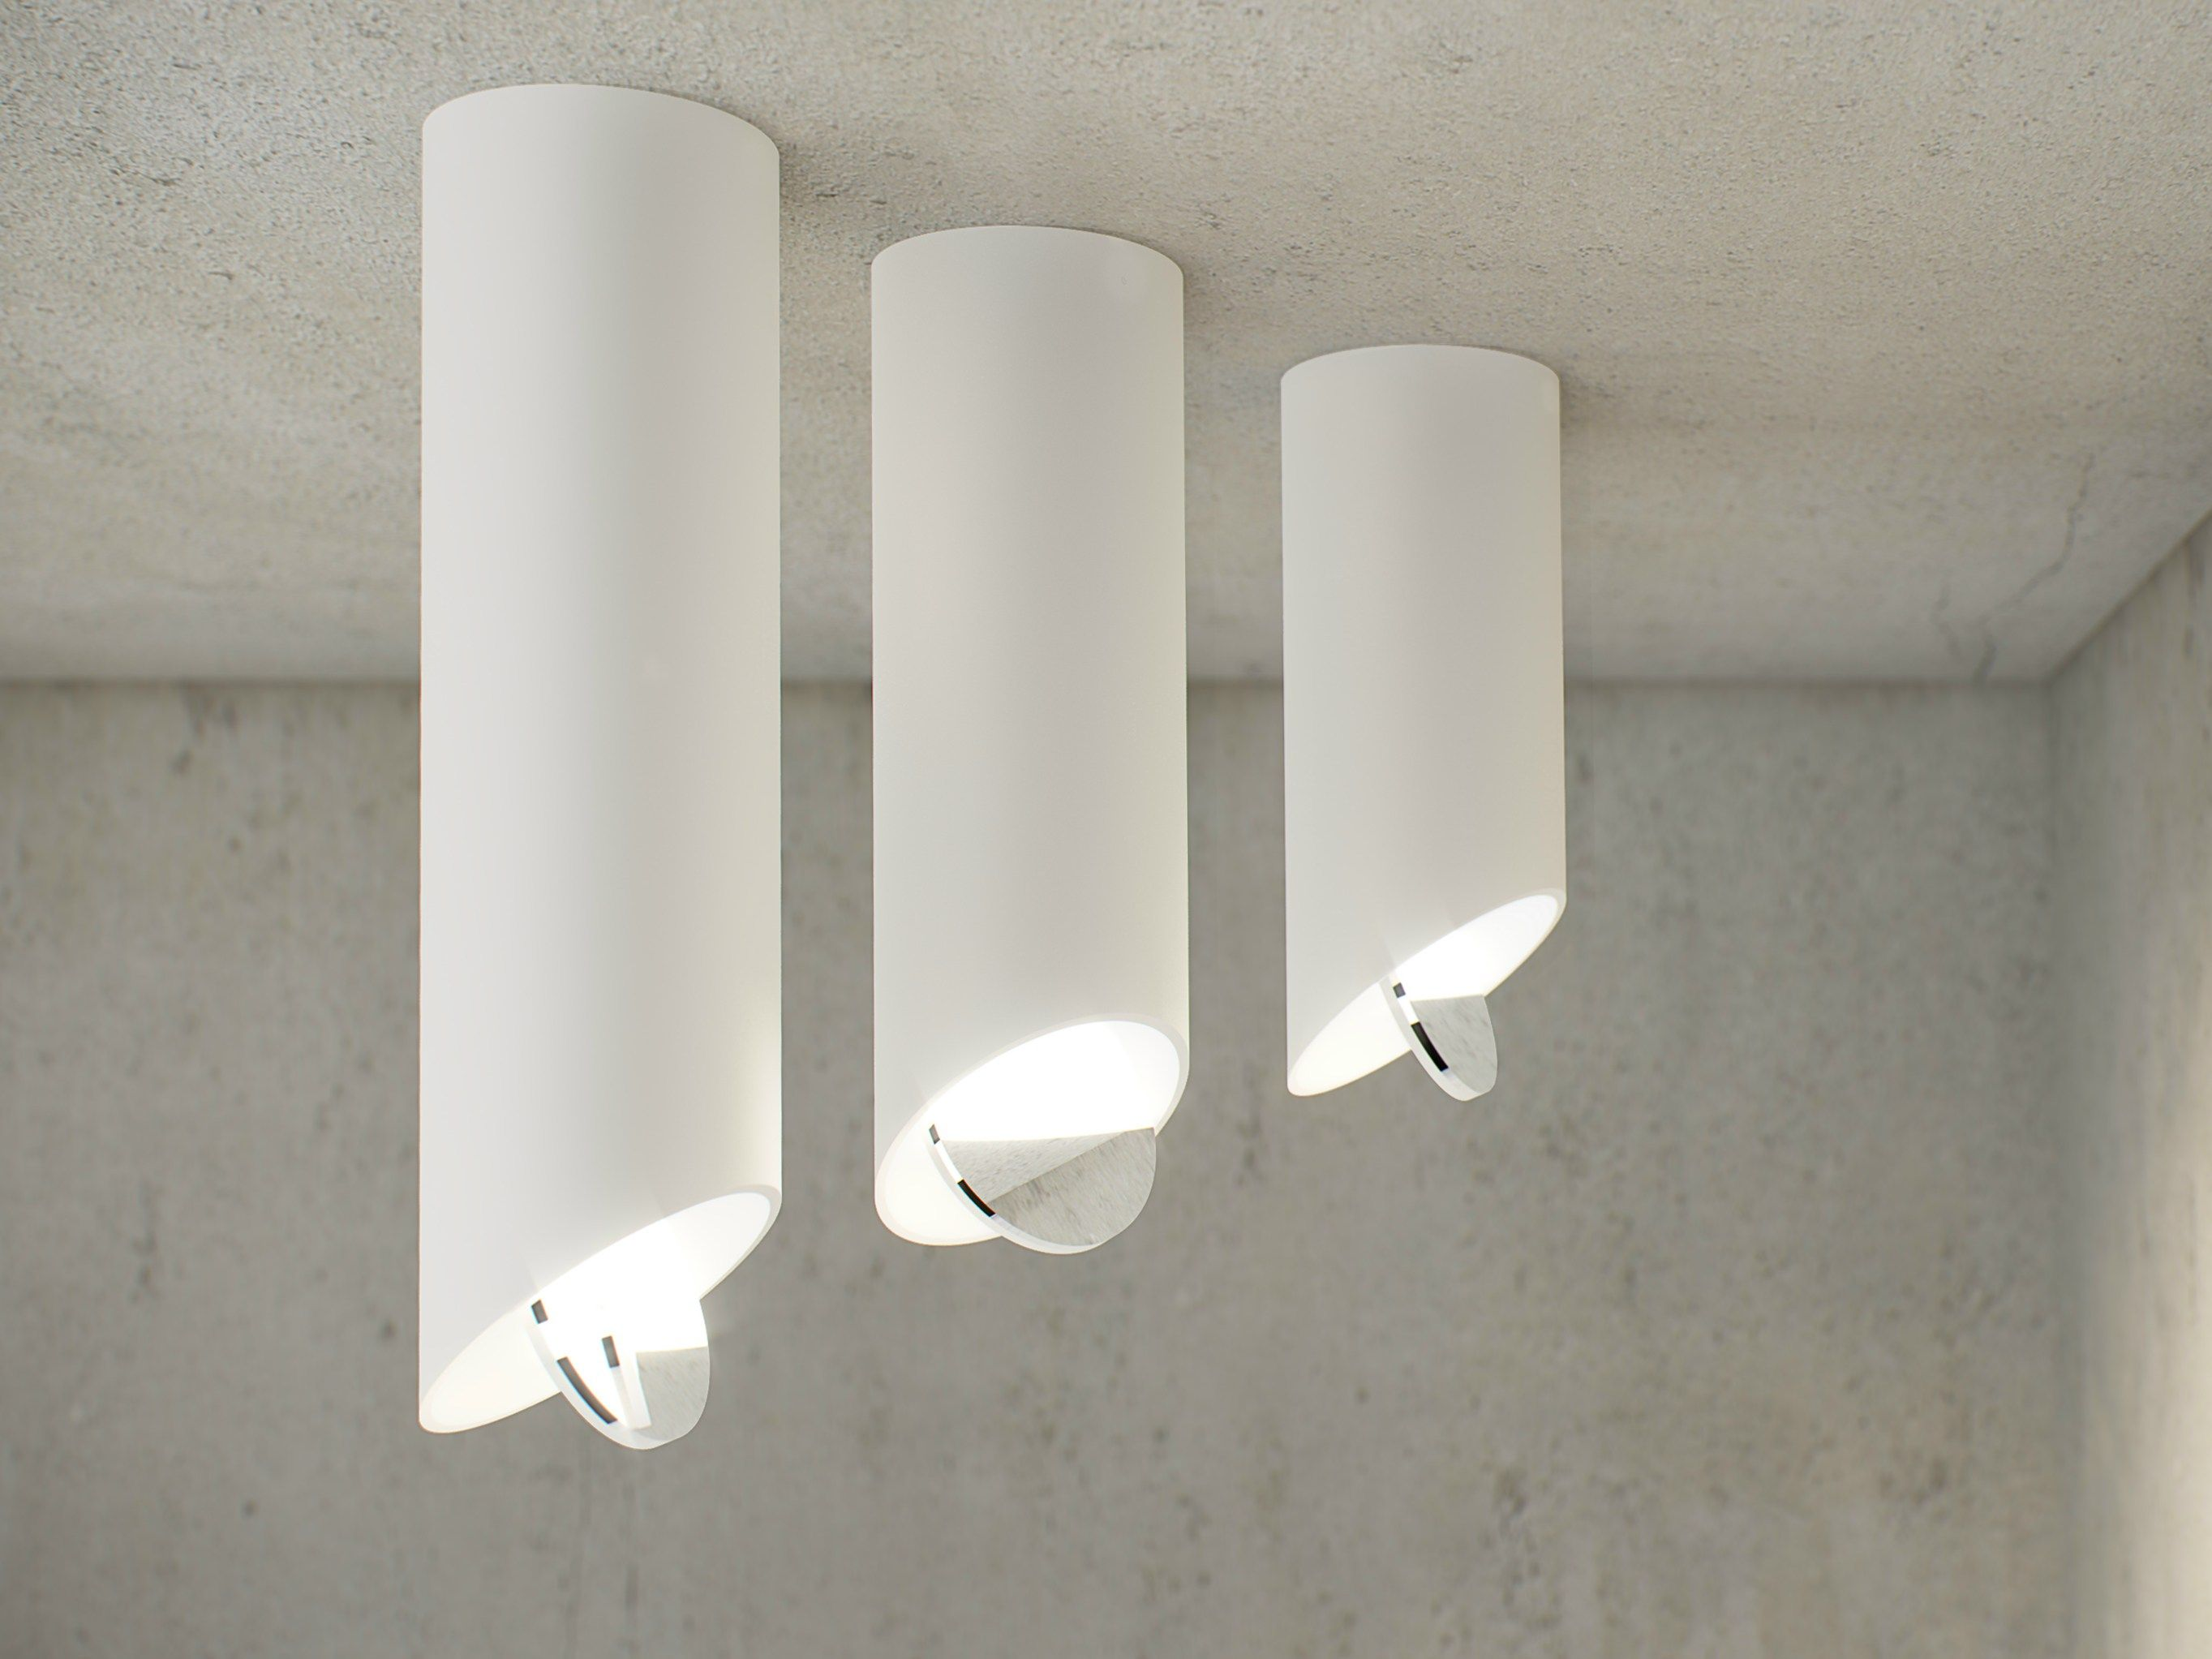 Led Ceiling Lamp Znow By Dark At Night Design Anthony Boelaert Led Ceiling Spotlights Ceiling Lamp Led Ceiling Lamp